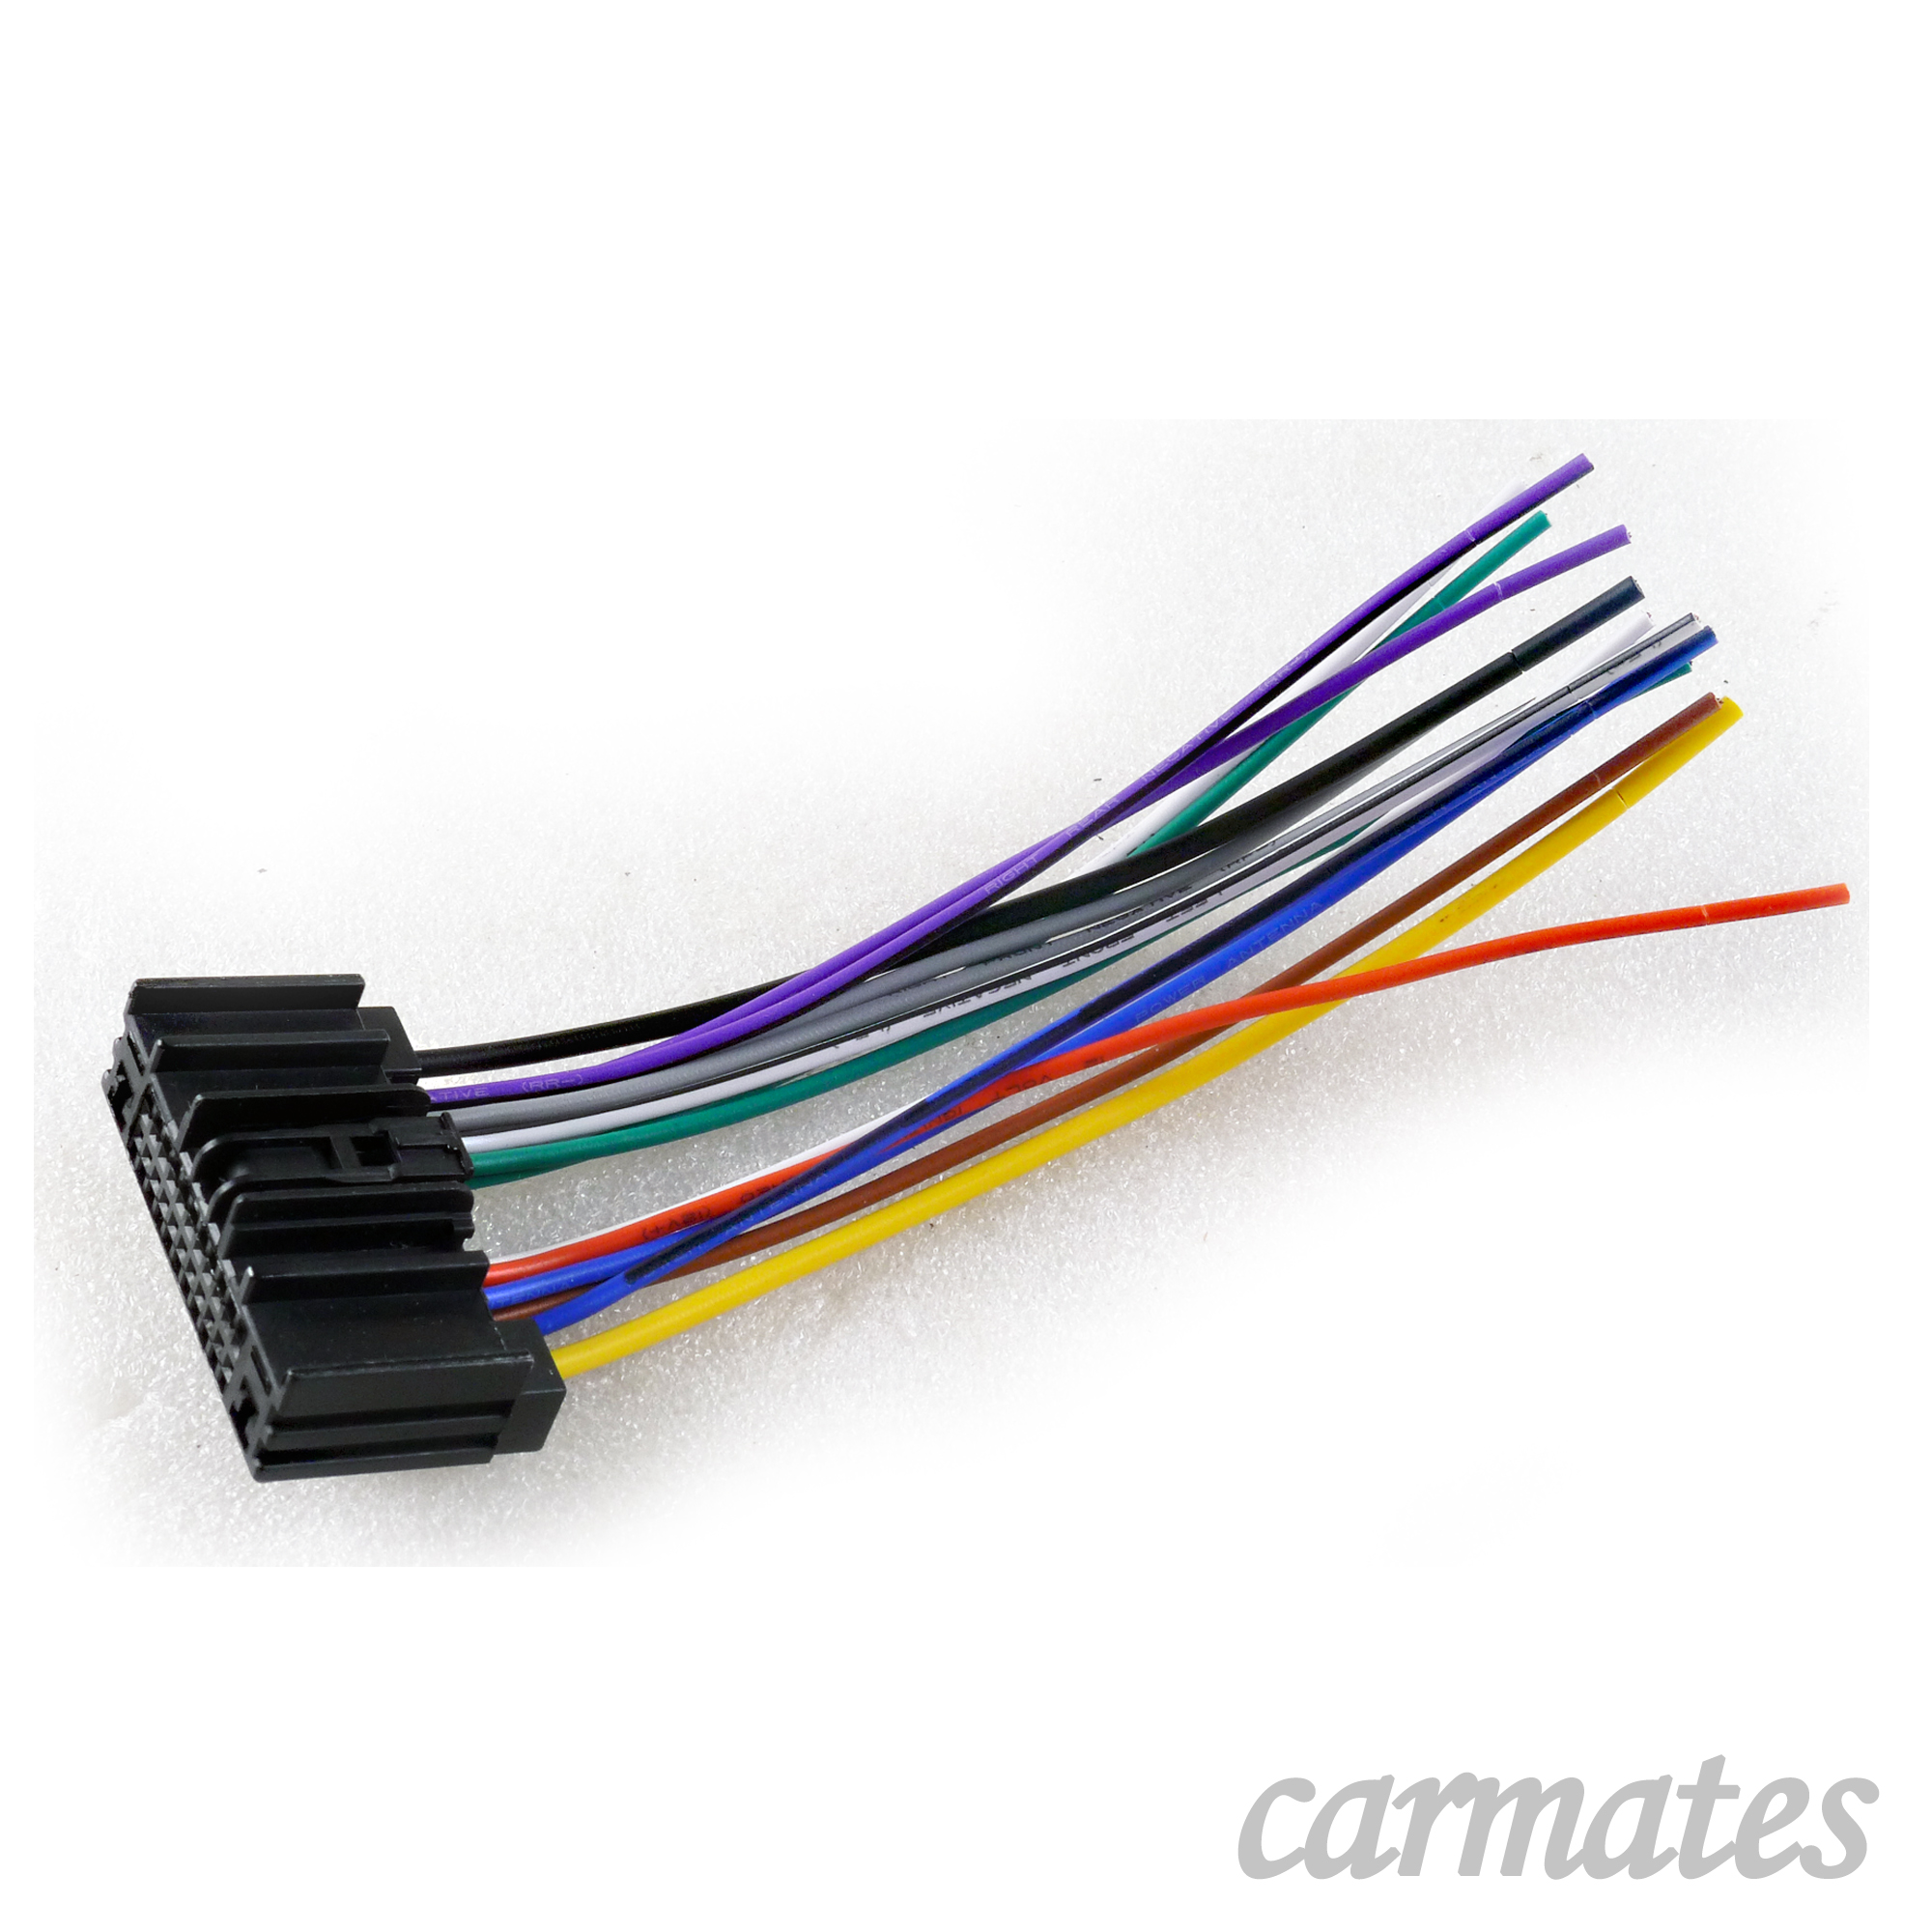 panasonic cd player wiring harness panasonic wiring diagram free